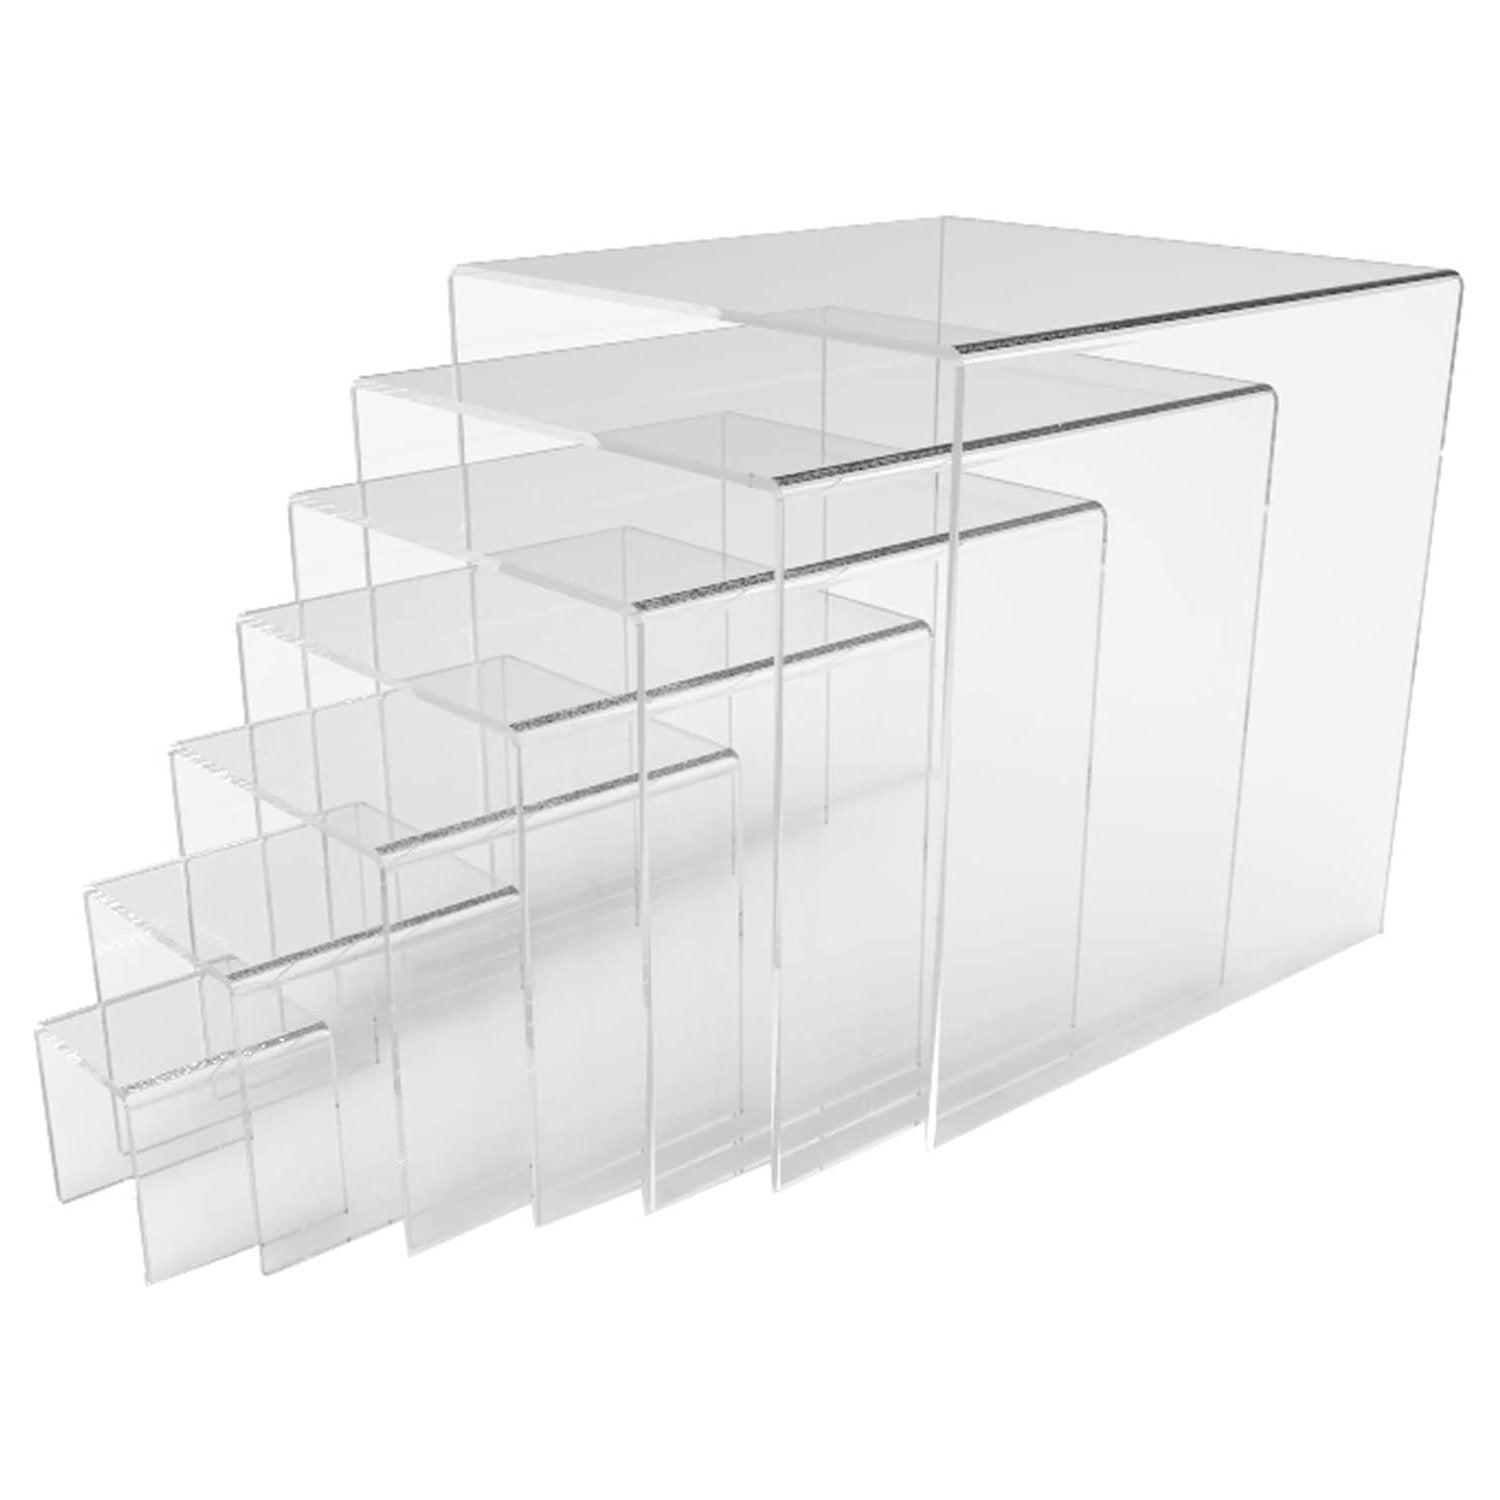 """U"" RISERS (SET OF 6): 4"" W TO 7"" W - Display Fixture Warehouse Retail"